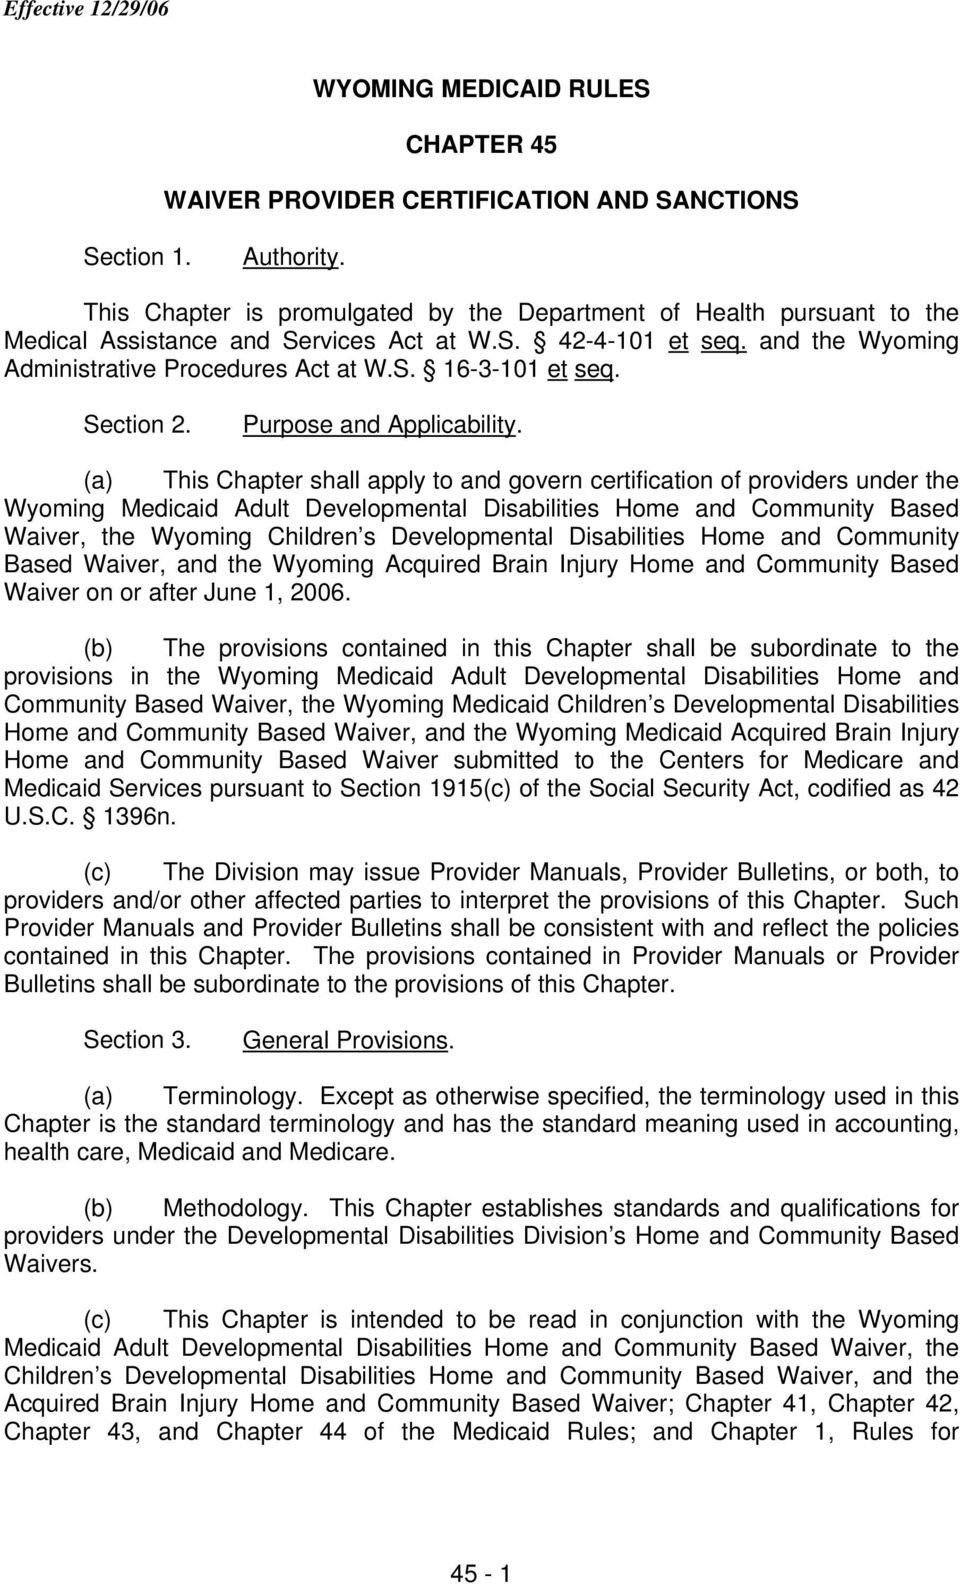 WYOMING MEDICAID RULES CHAPTER 45 WAIVER PROVIDER